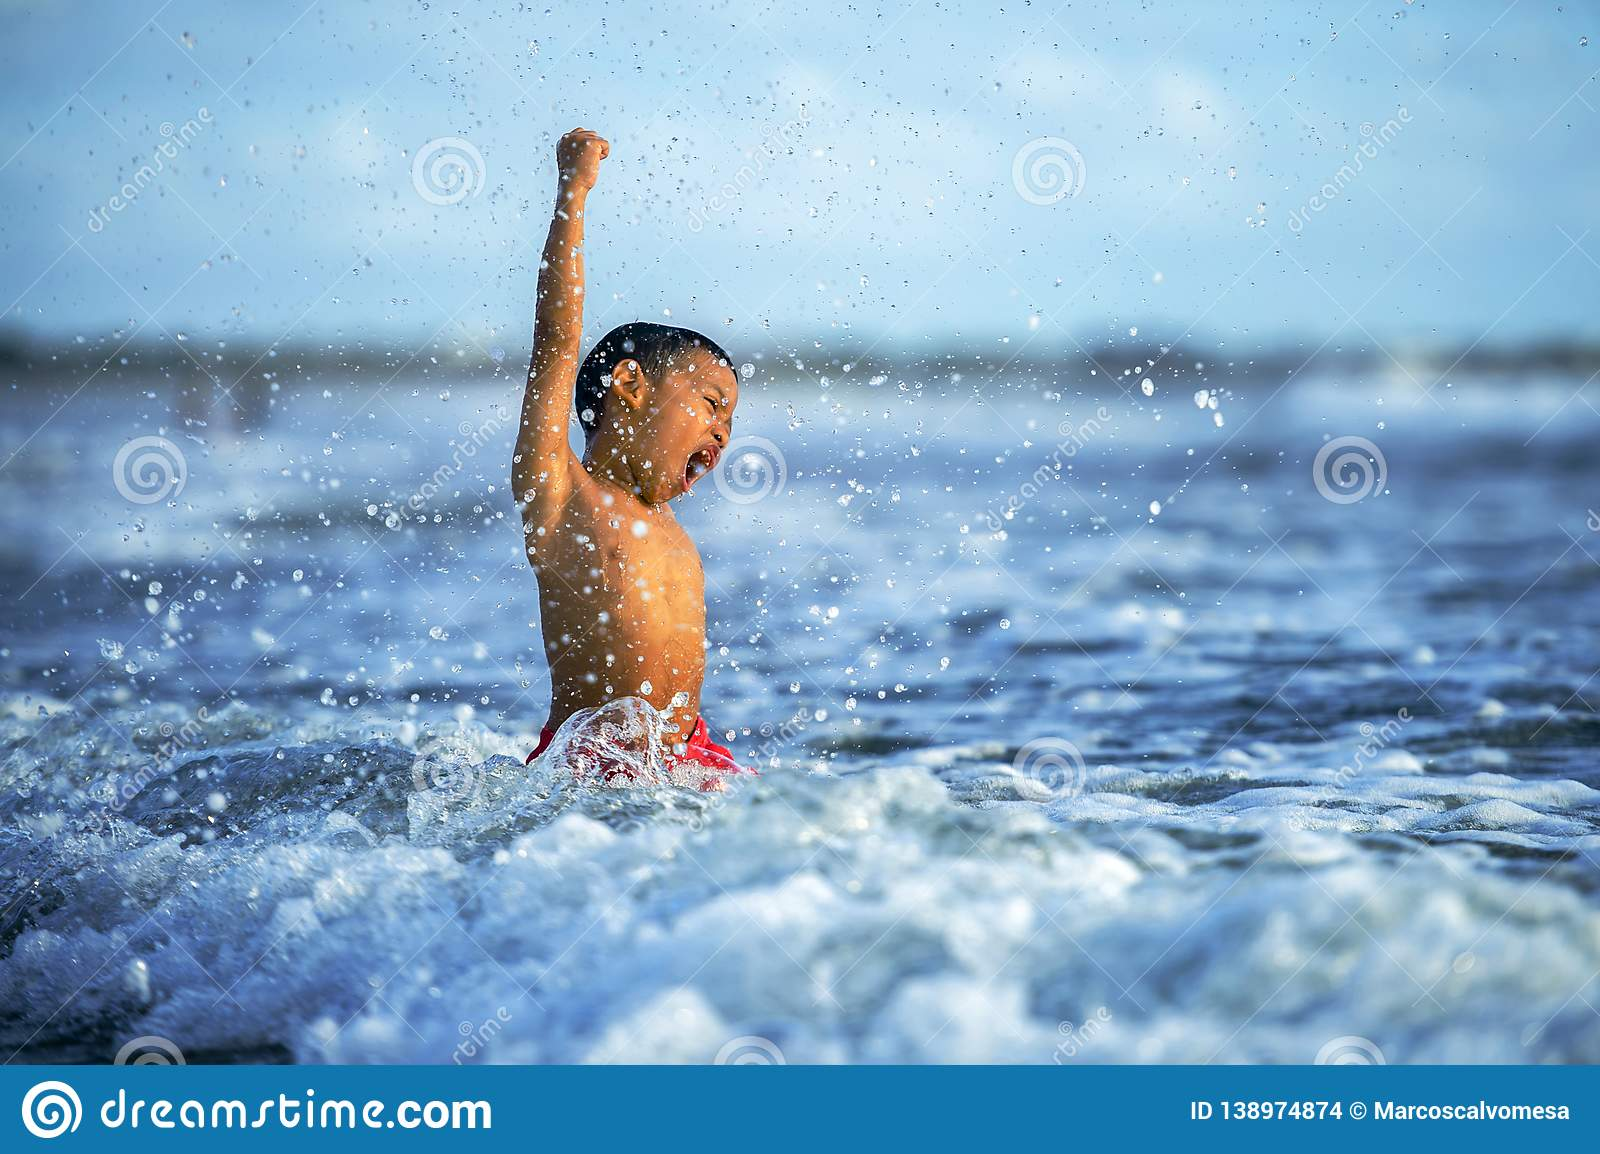 5 years old cute and happy child playing crazy free having fun on the beach splashing on water and sea waves enjoying holidays